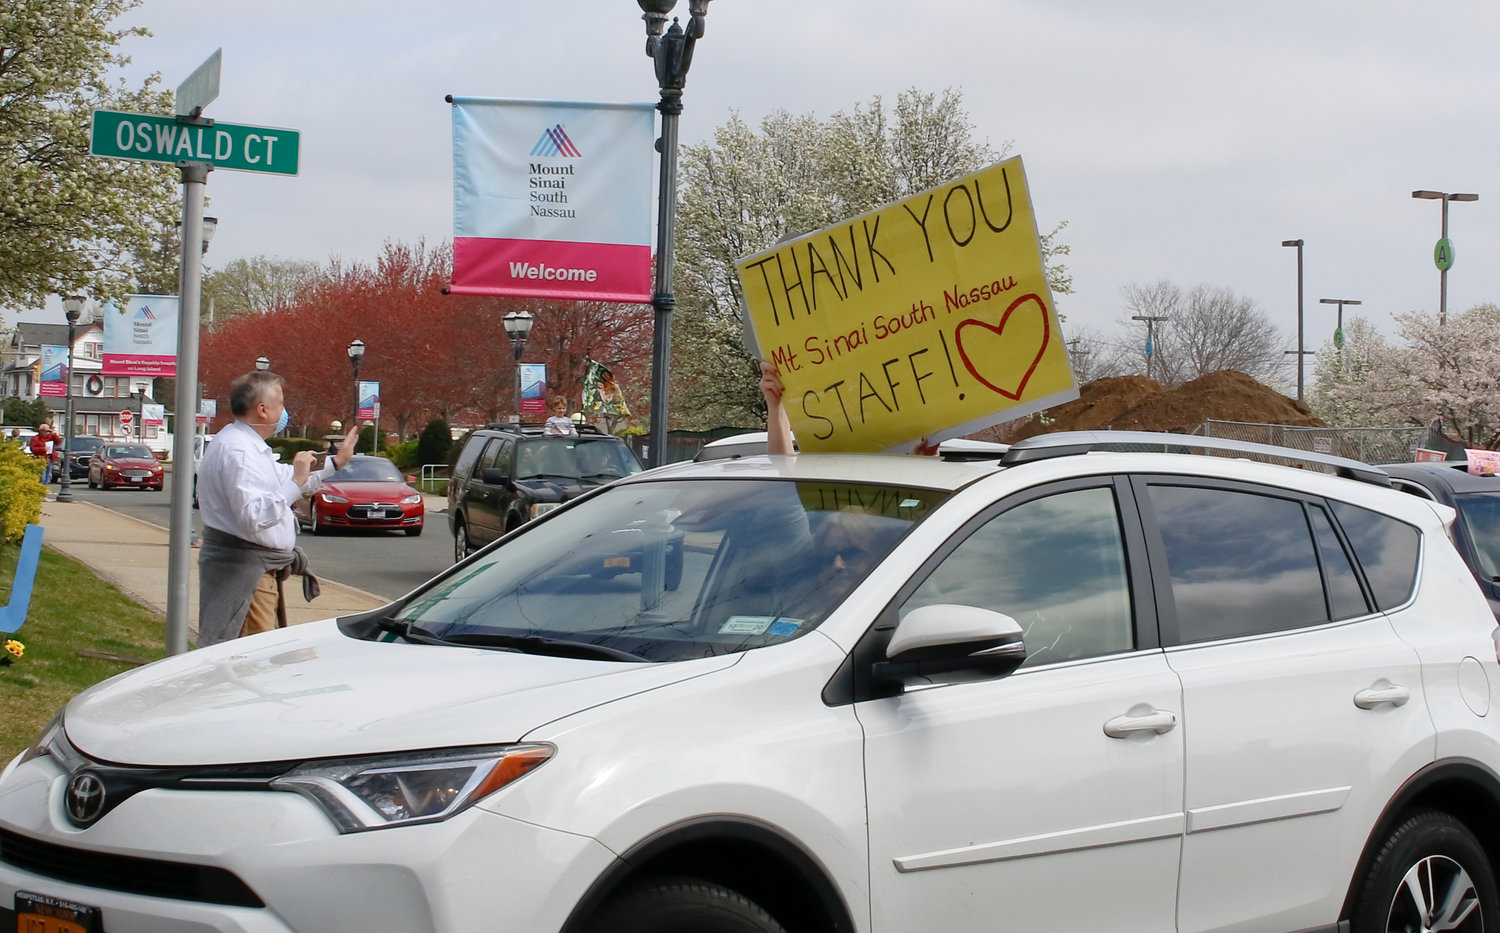 Many of the passengers held signs voicing their support and gratitude.